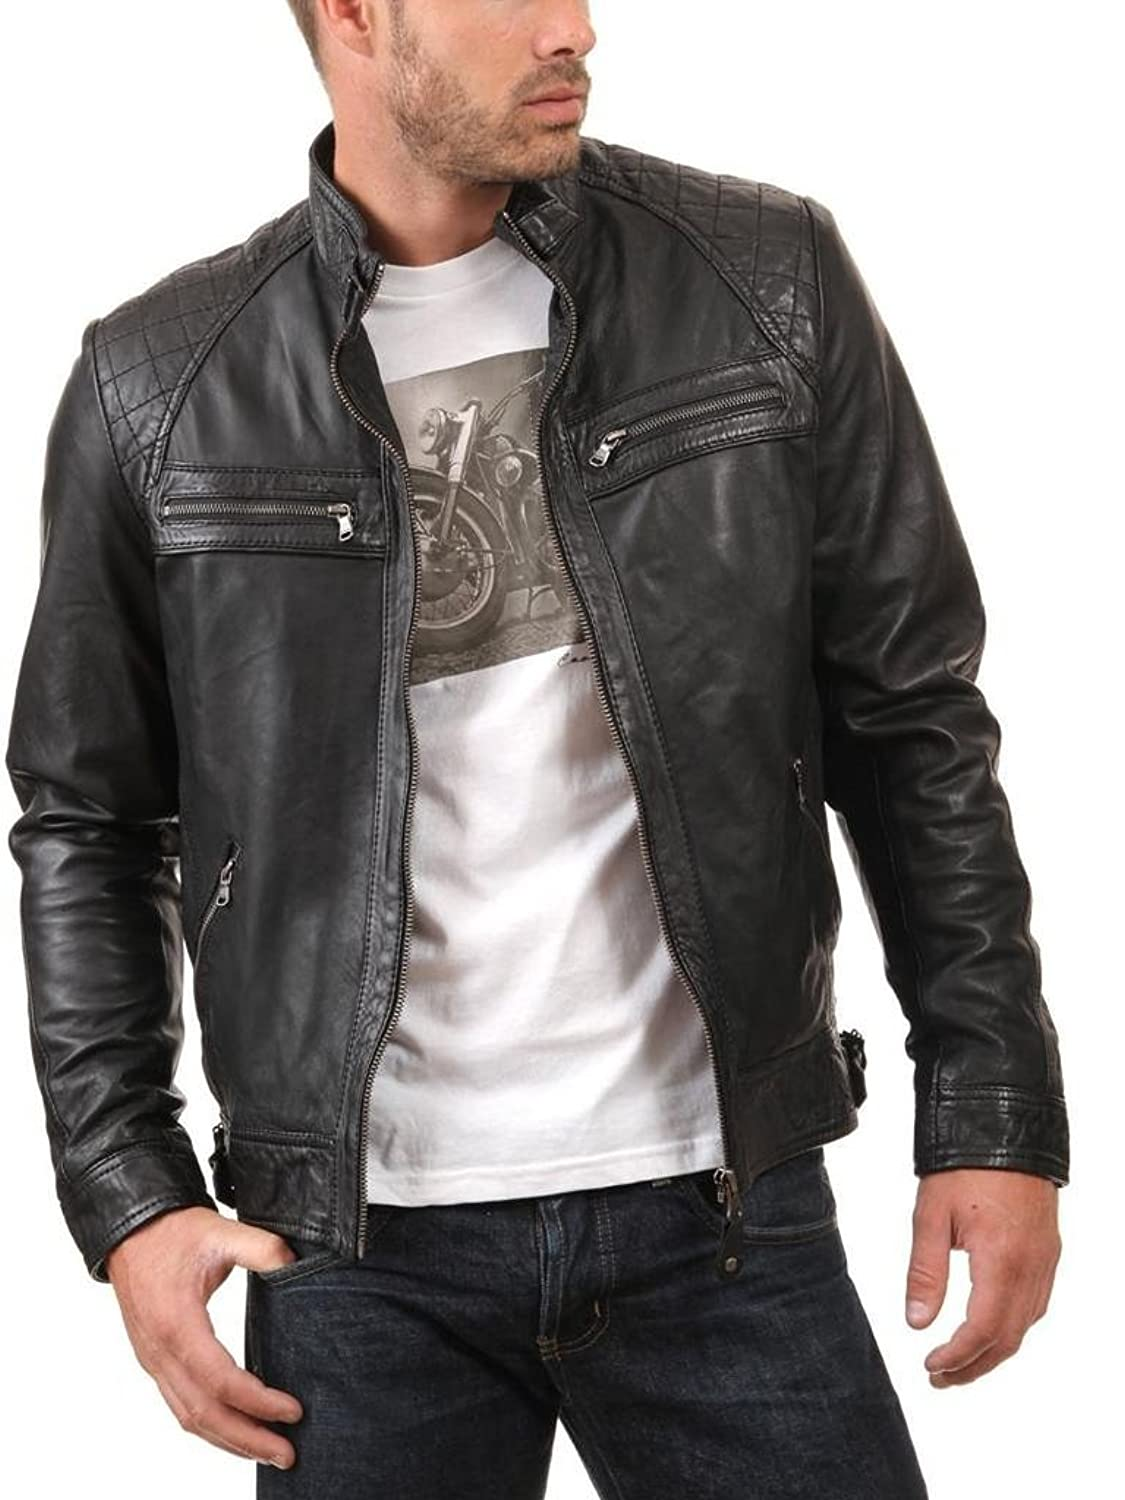 Western Leather Men's Leather Jacket Black at Amazon Men's ...